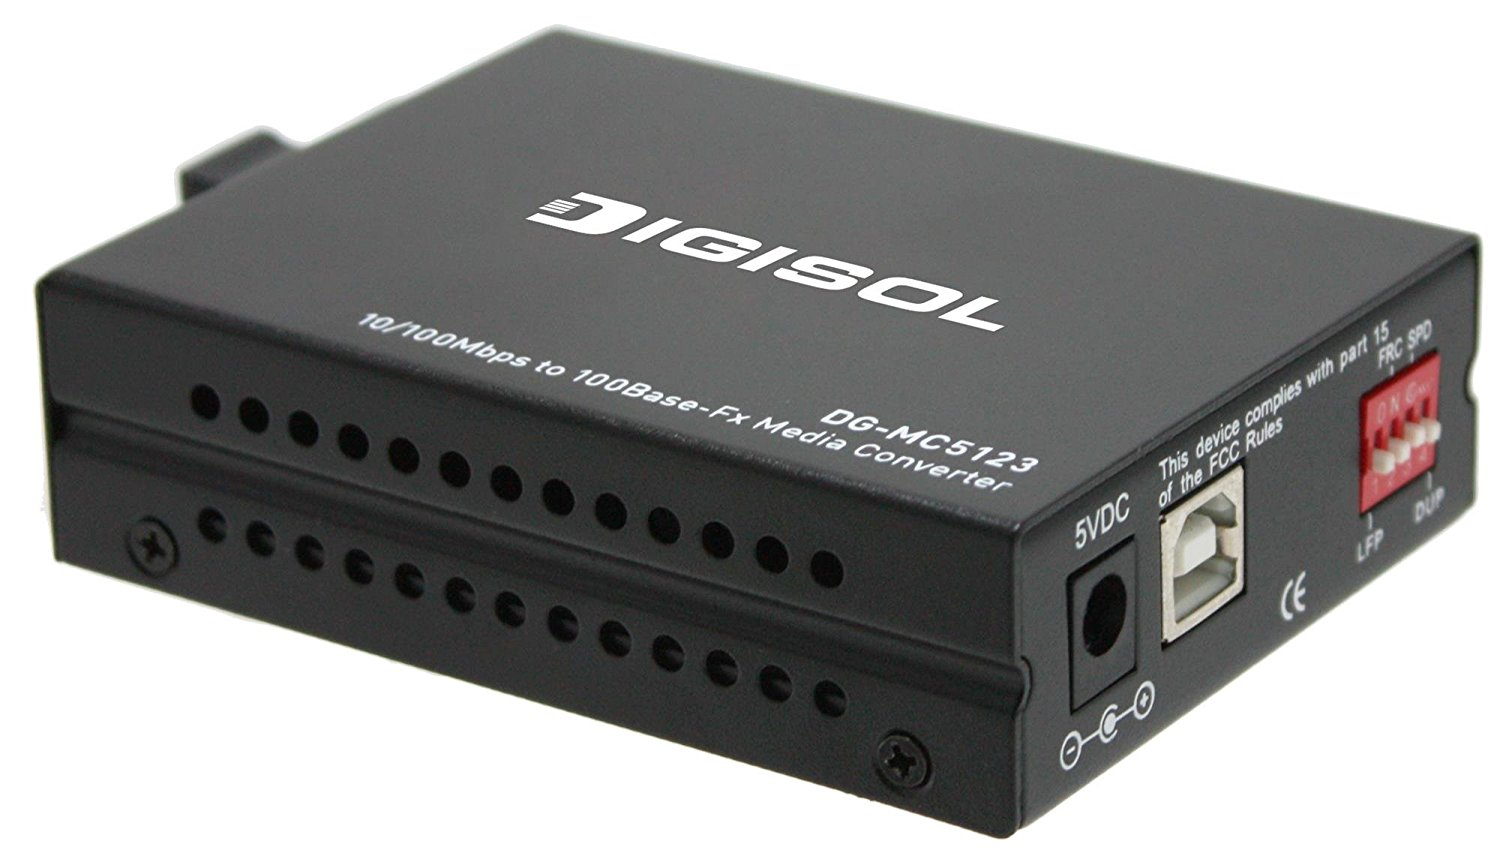 Digisol DG-MC5123 Media Converter